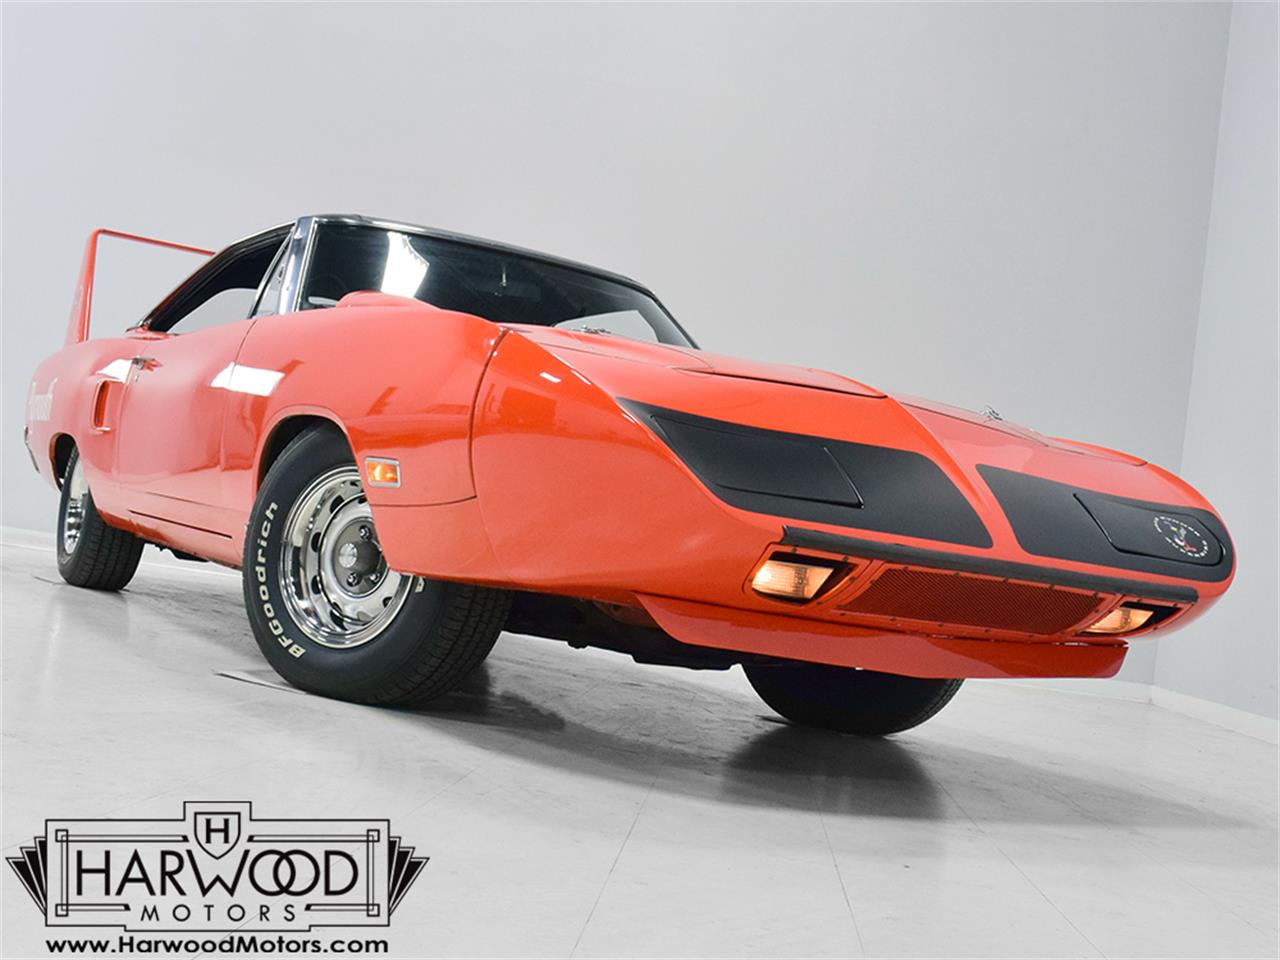 For Sale: 1970 Plymouth Superbird in Macedonia, Ohio